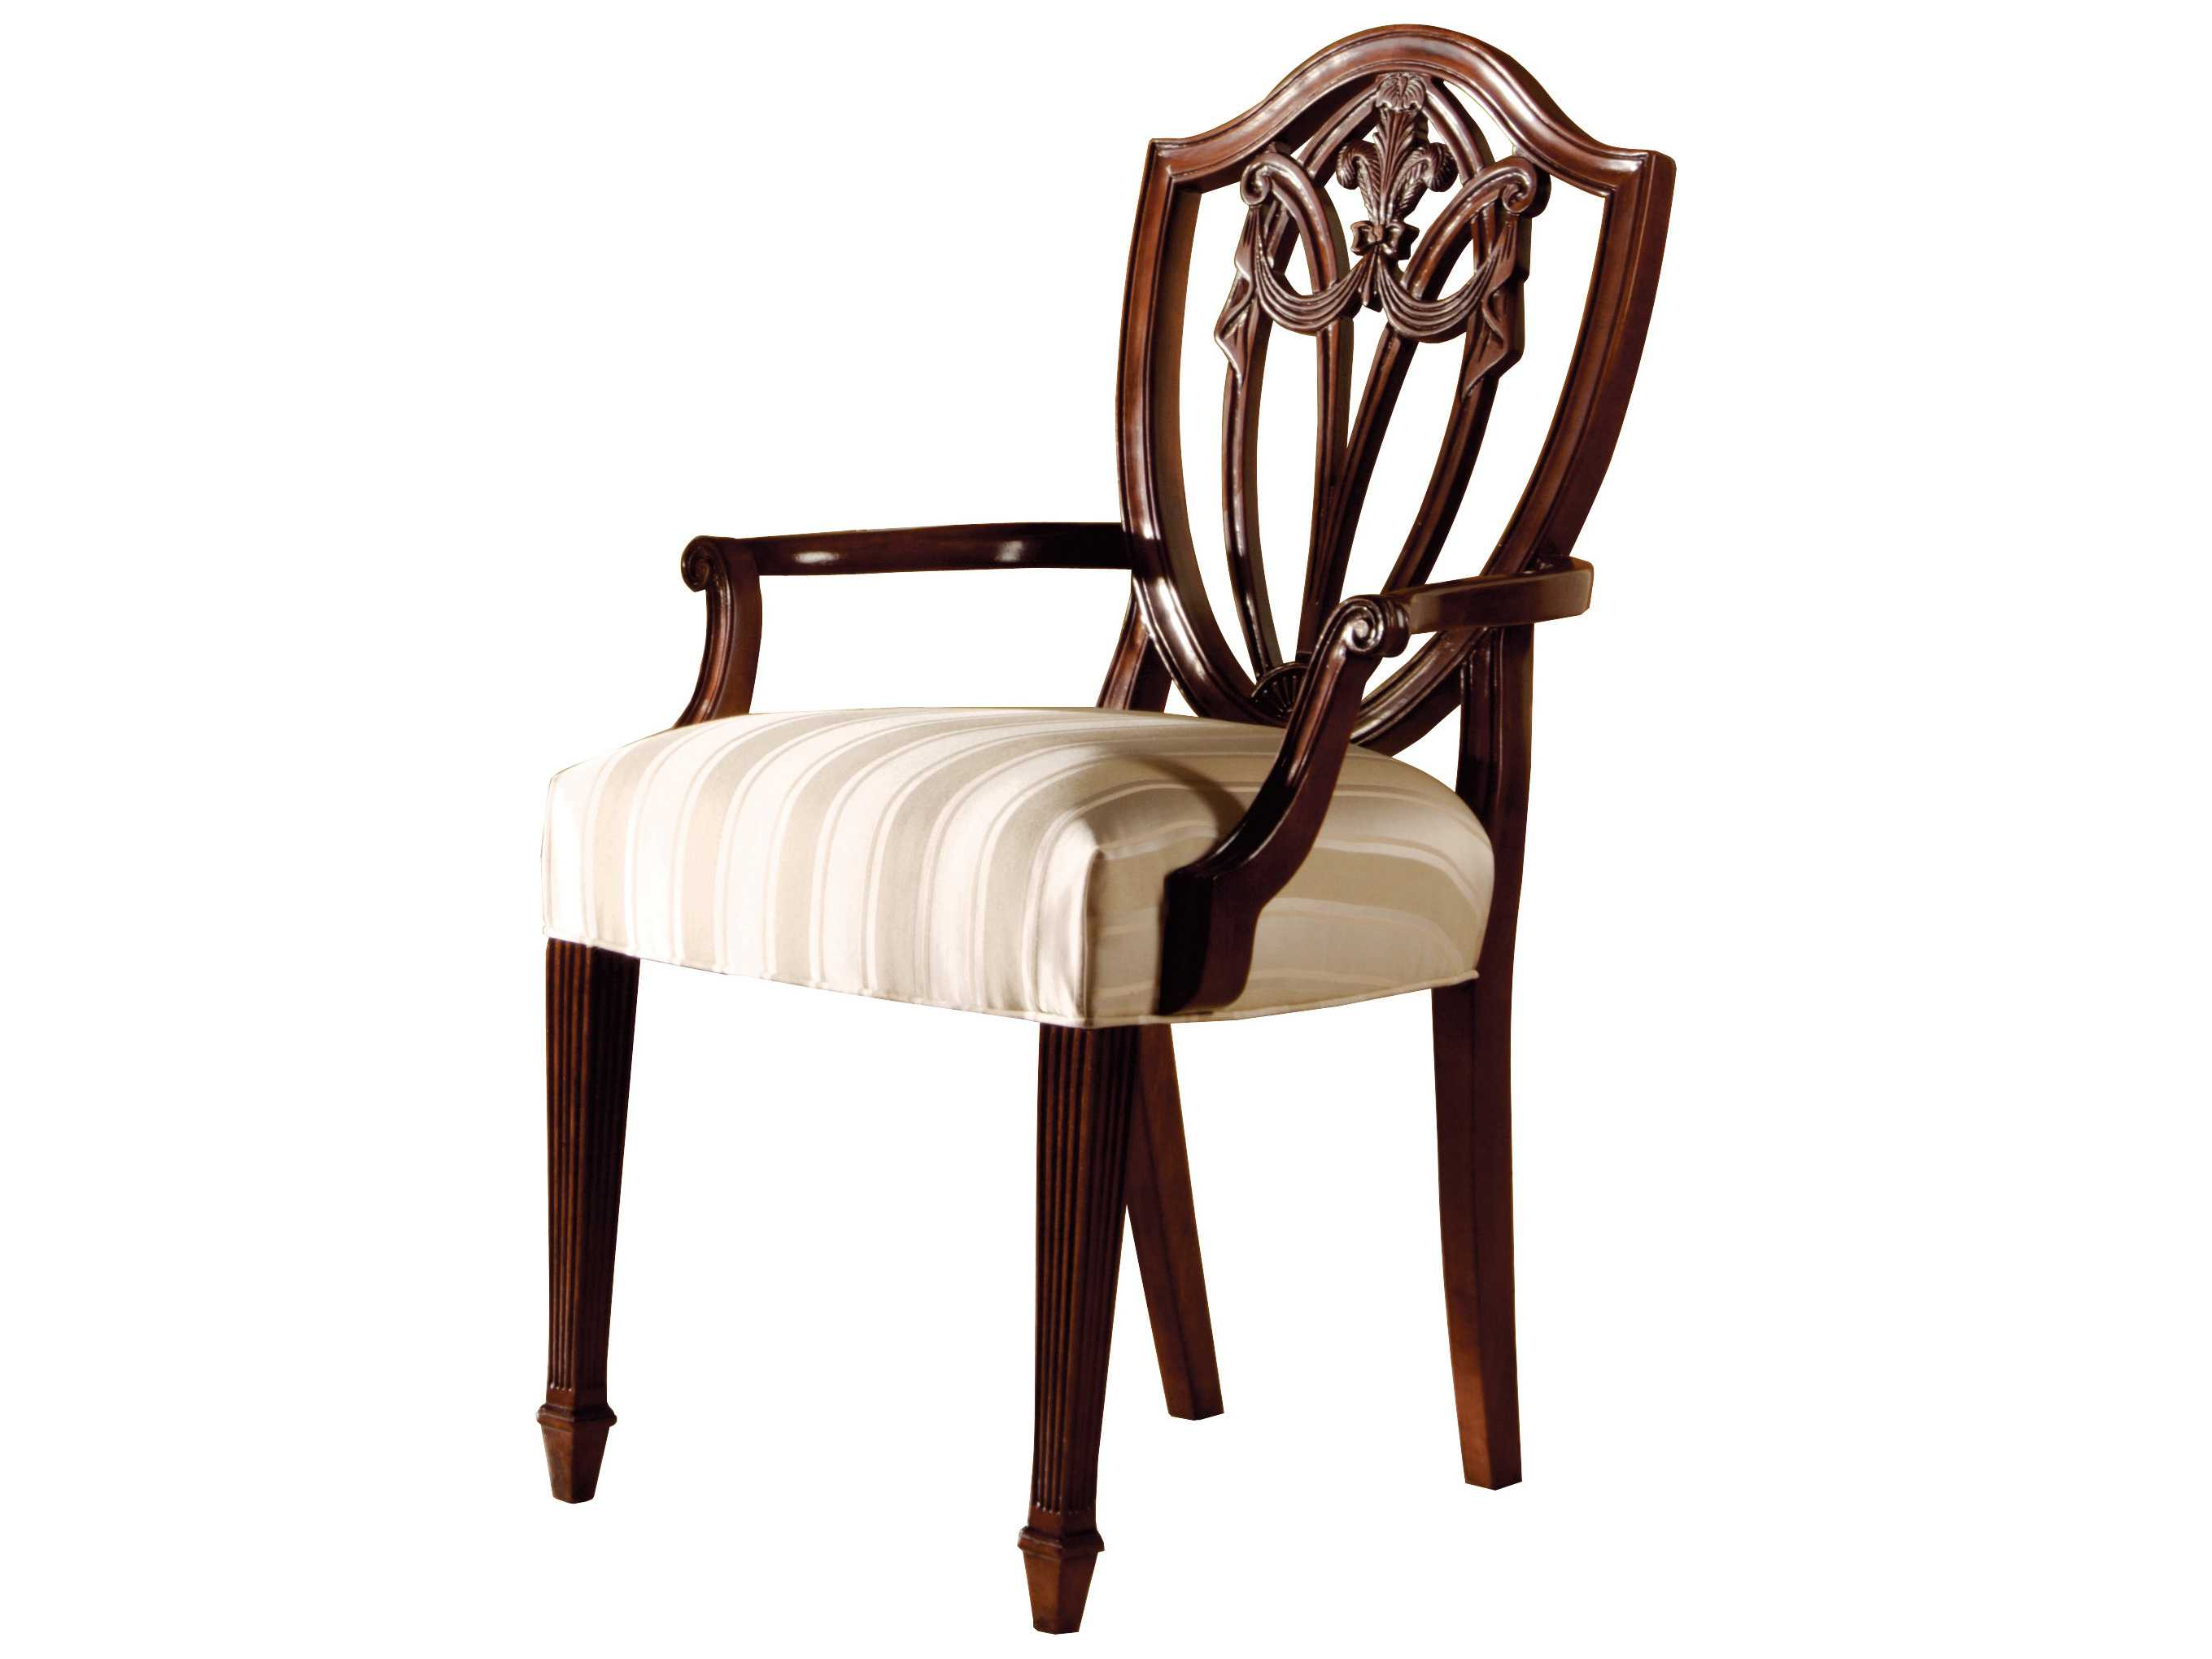 Accent Arm Chairs Hekman Copley Place Accent Arm Chair